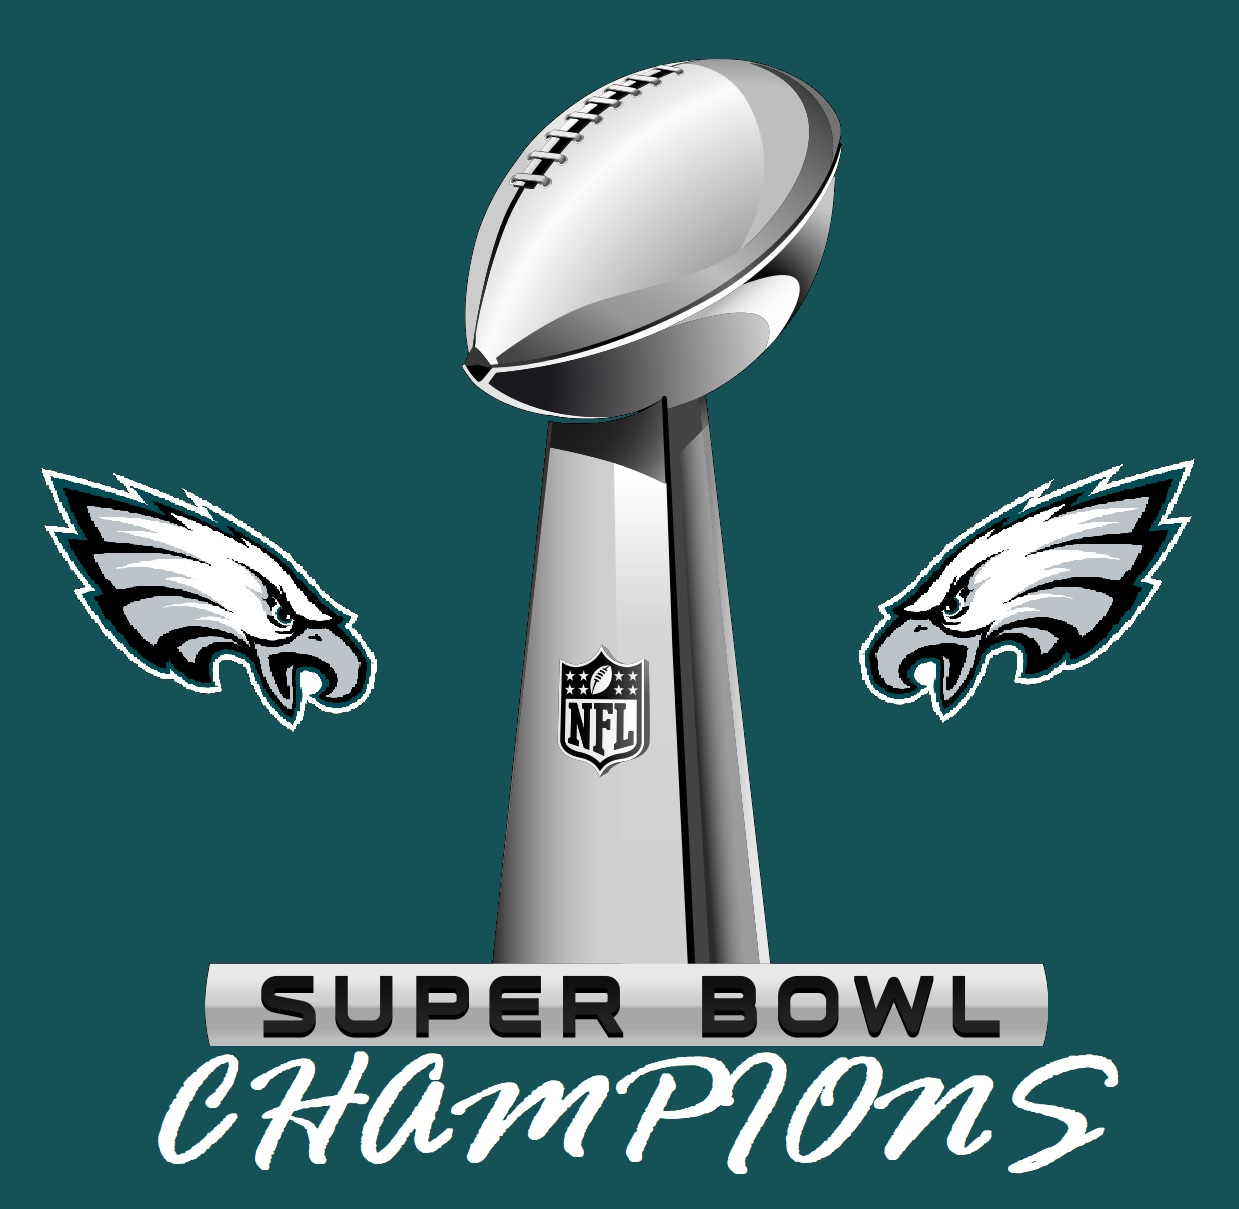 SUPER BOWL LII CHAMPIONS